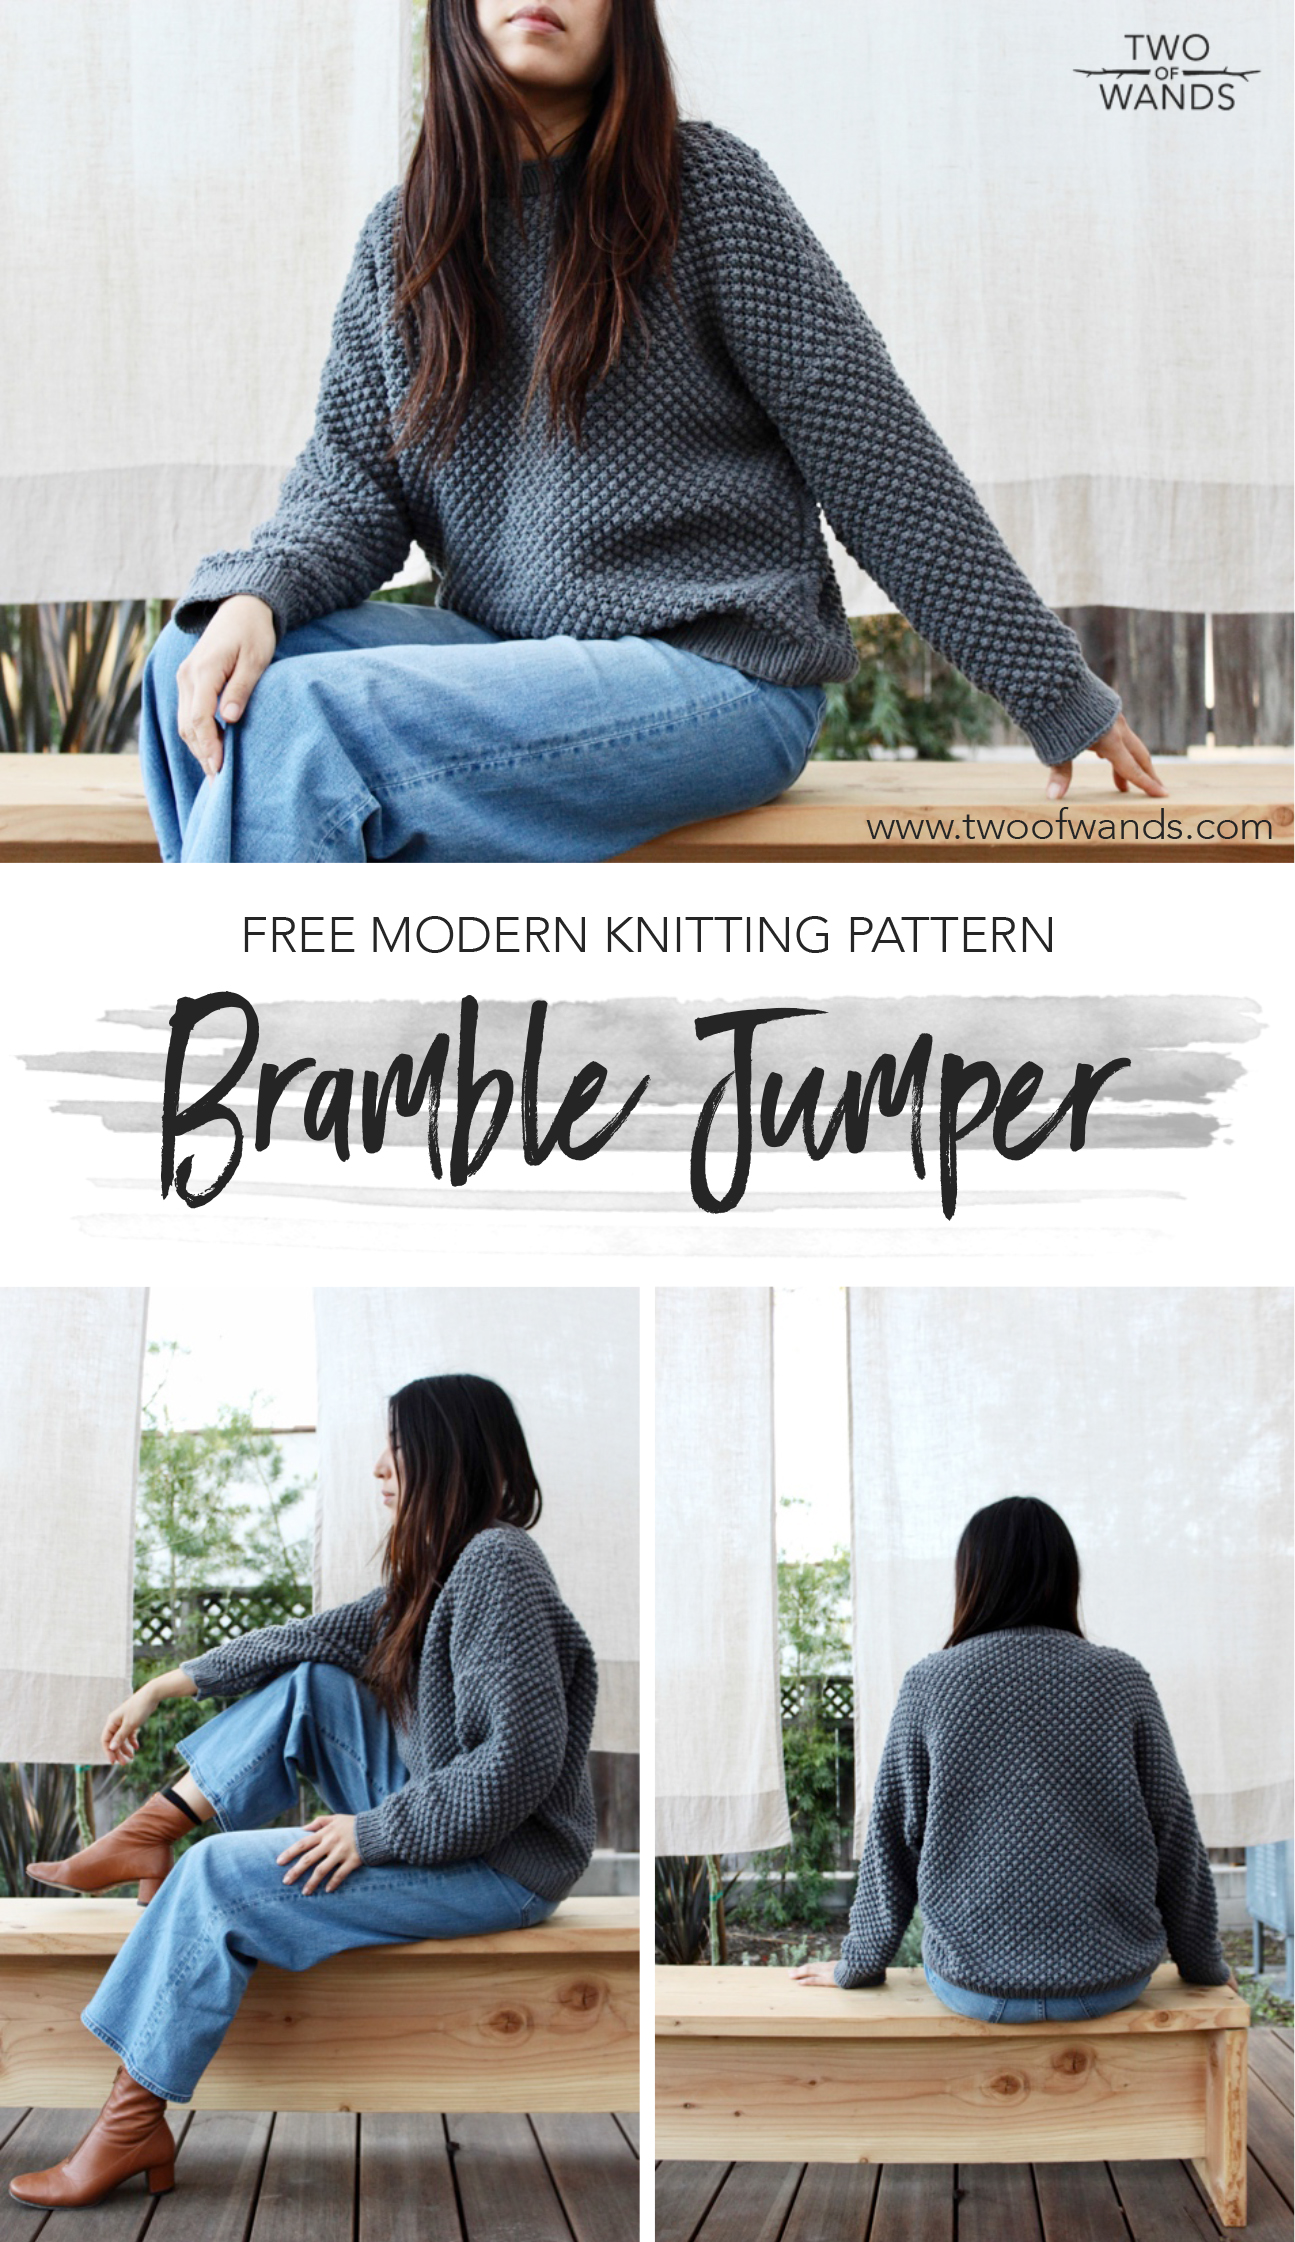 Bramble Jumper pattern by Two of Wands